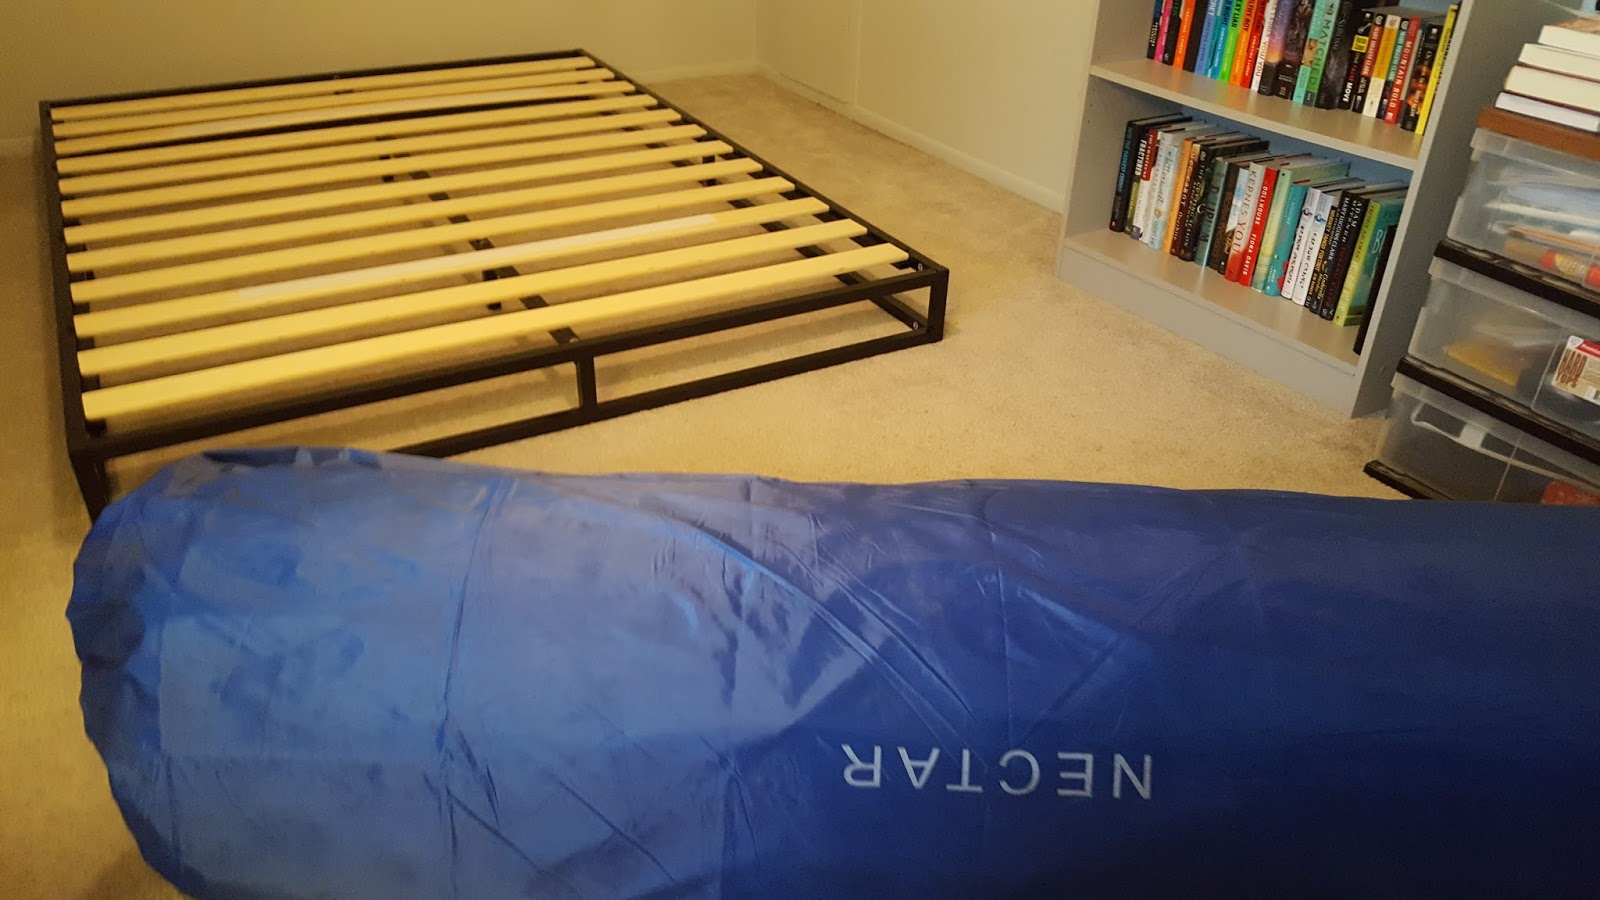 The Last Time I Purchased A Mattress Was In 2012, When I Moved From My  Parentsu0027 Place Into My First Post College Apartment. We Went To A Furniture  Store And ...